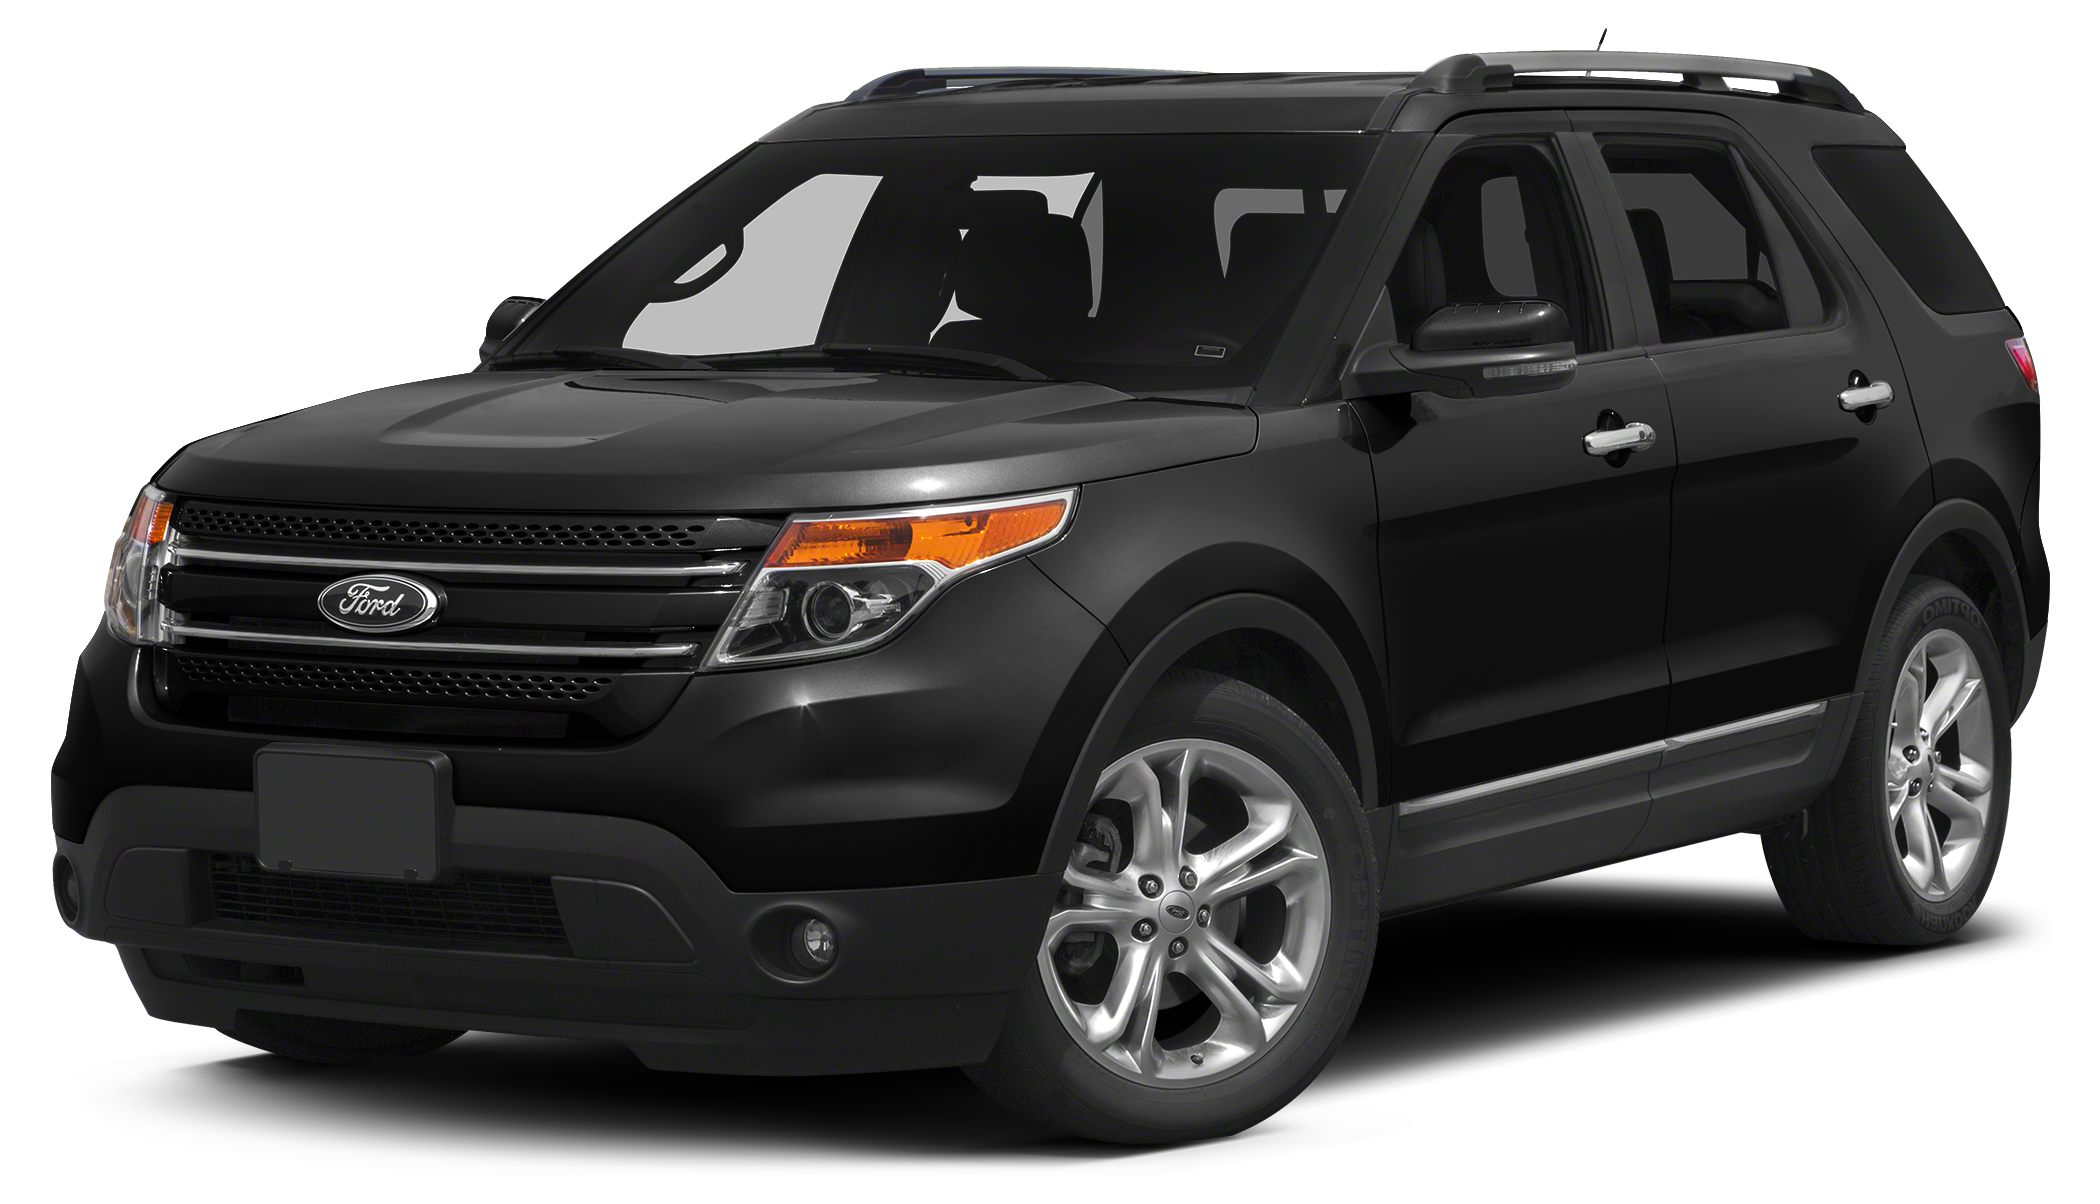 2014 Ford Explorer Limited WE OFFER FREE LIFETIME INSPECTION Miles 77979Color Black Stock P15